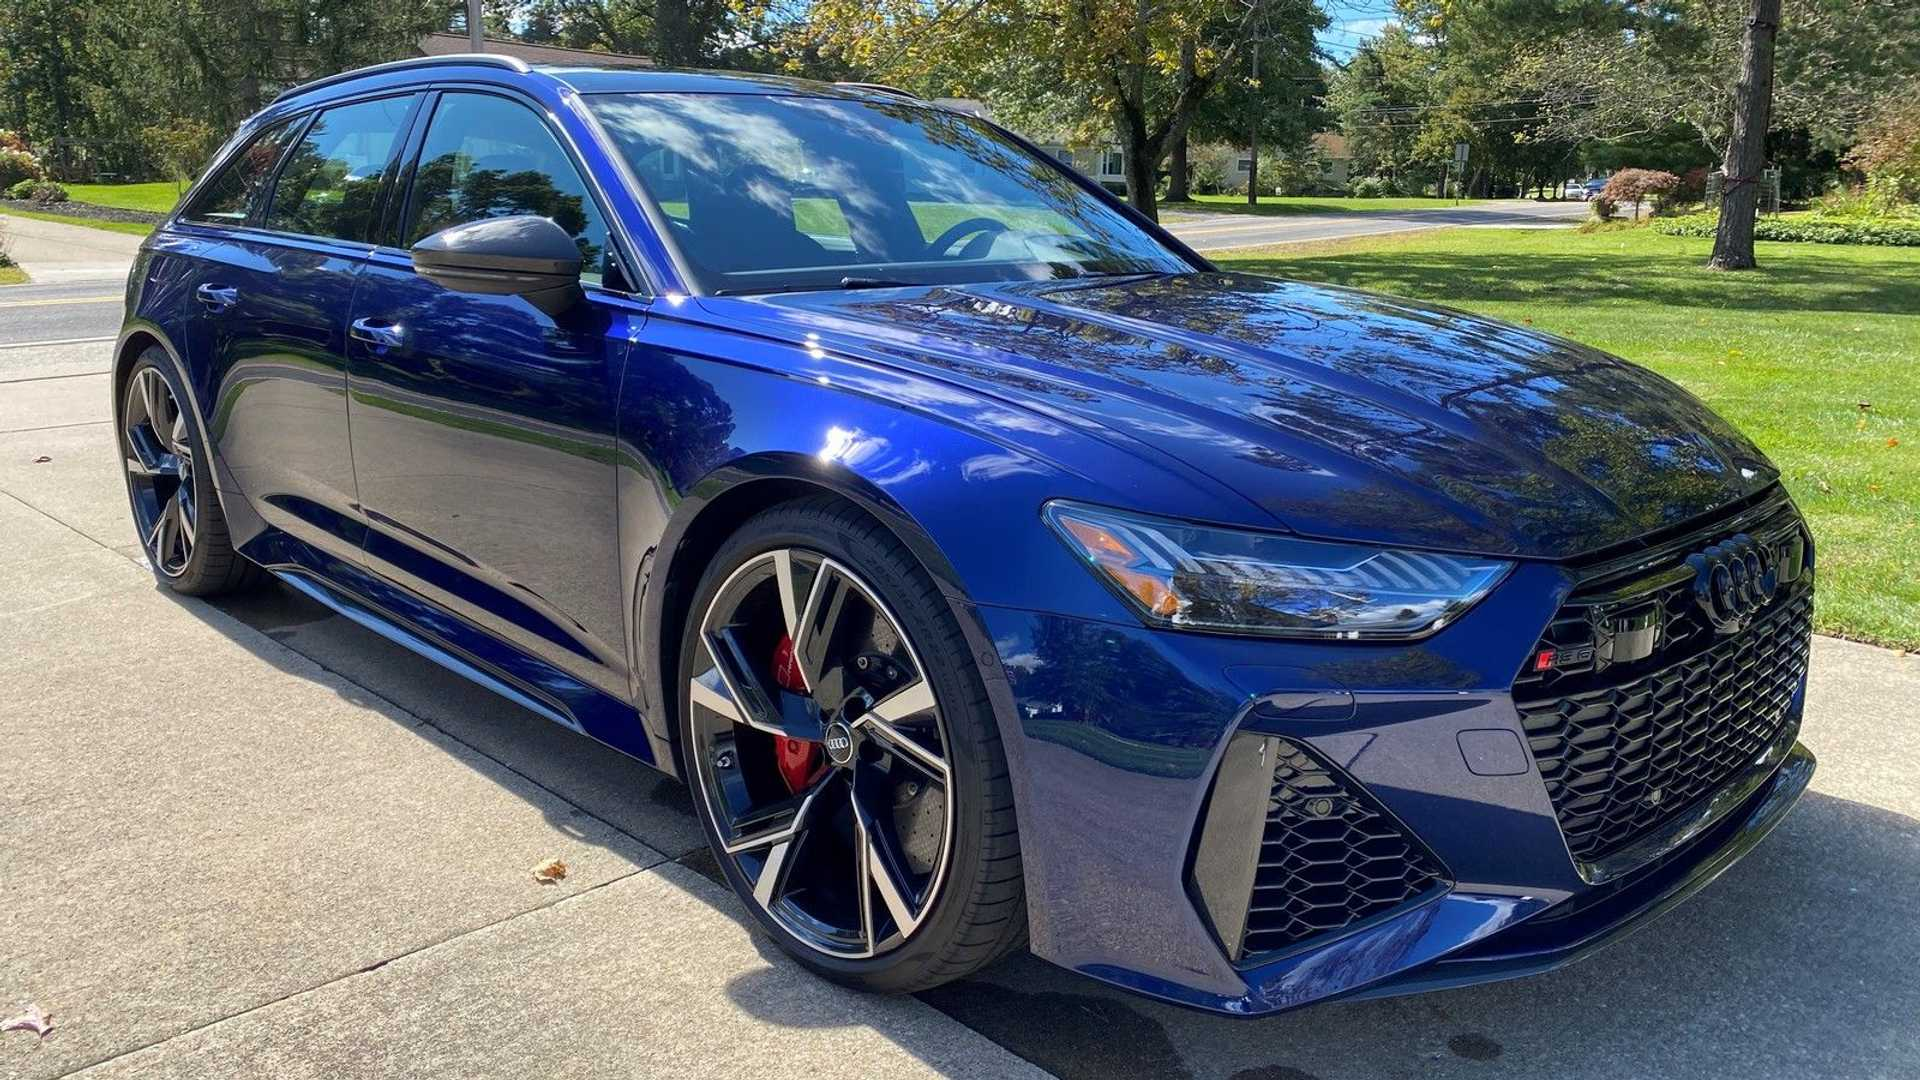 2021 Audi RS6 Avant Owner Selling Super Wagon For $207,000